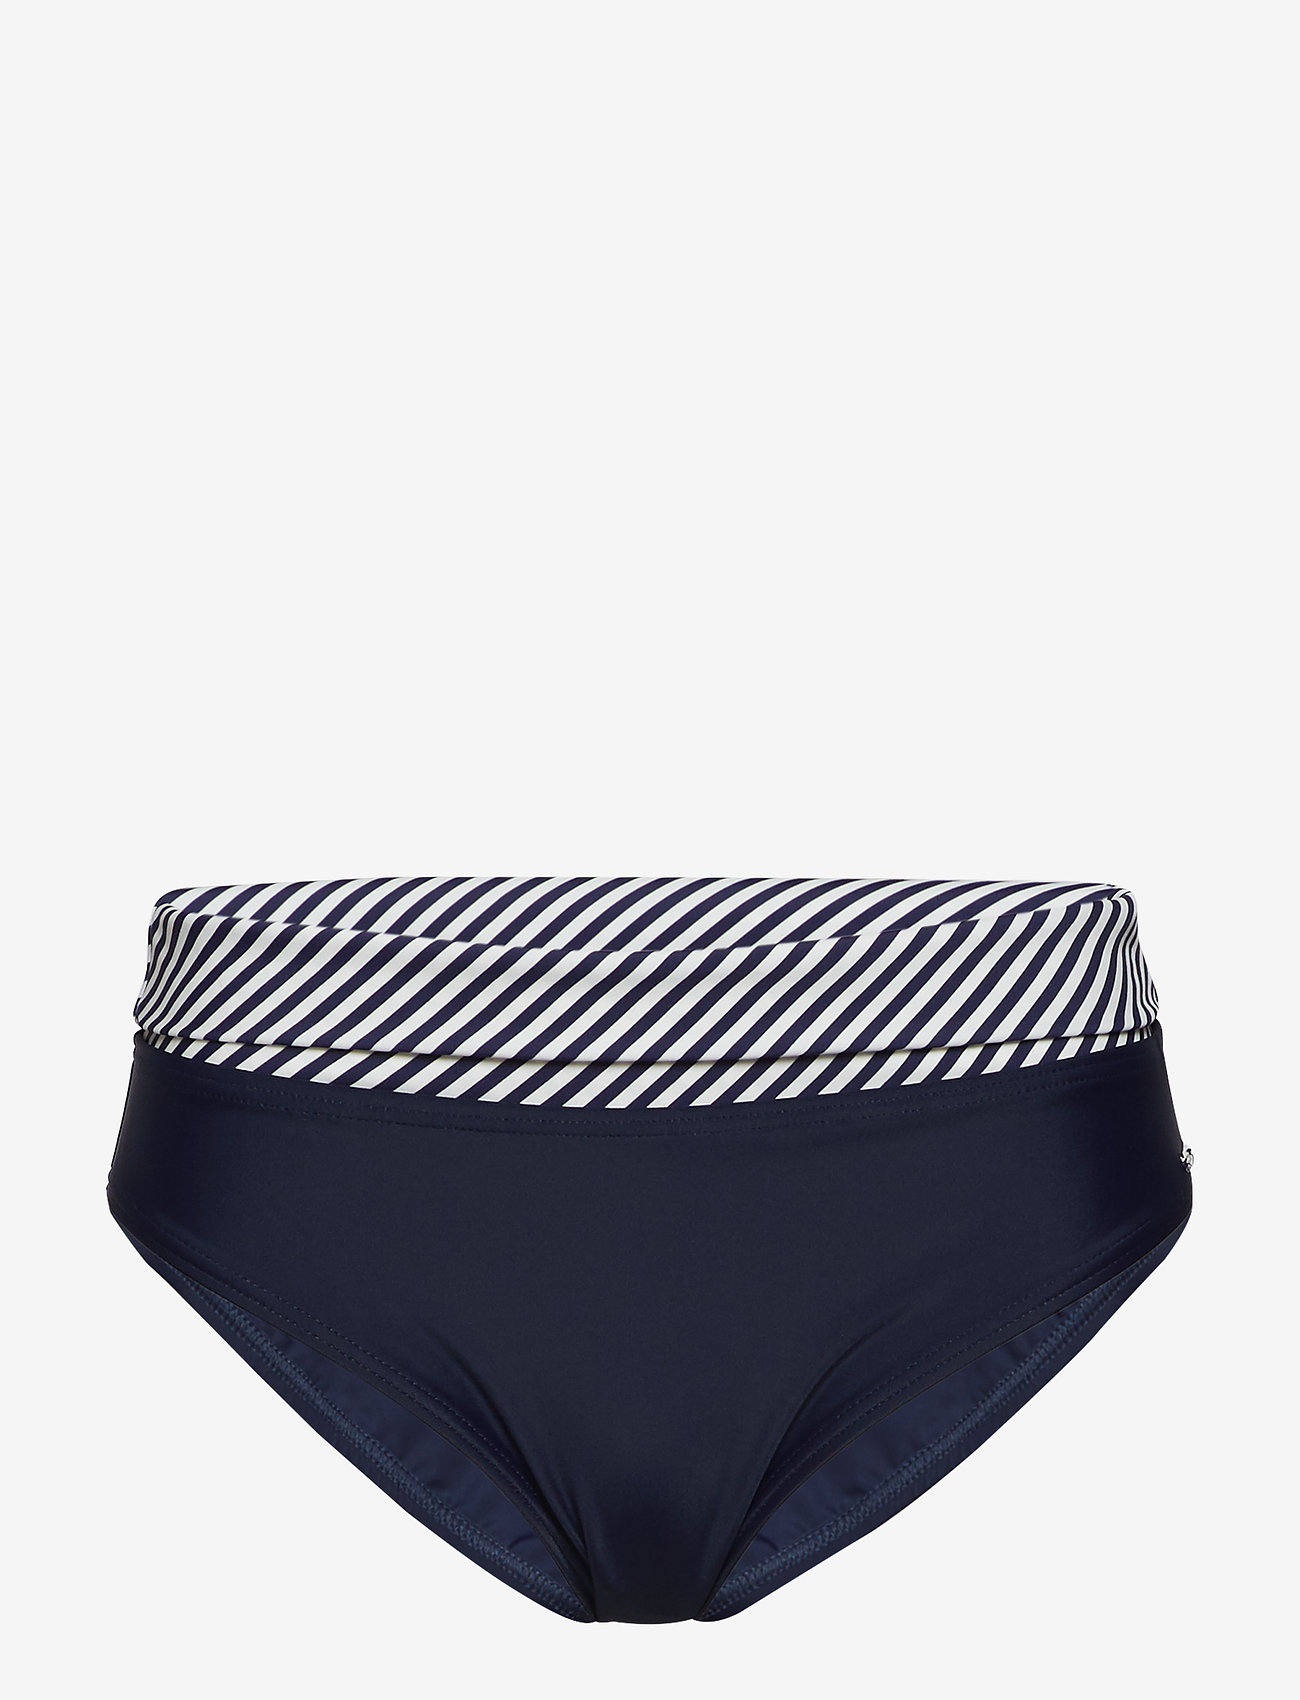 Abecita - Brighton, folded brief - bikinialaosat - navy/white